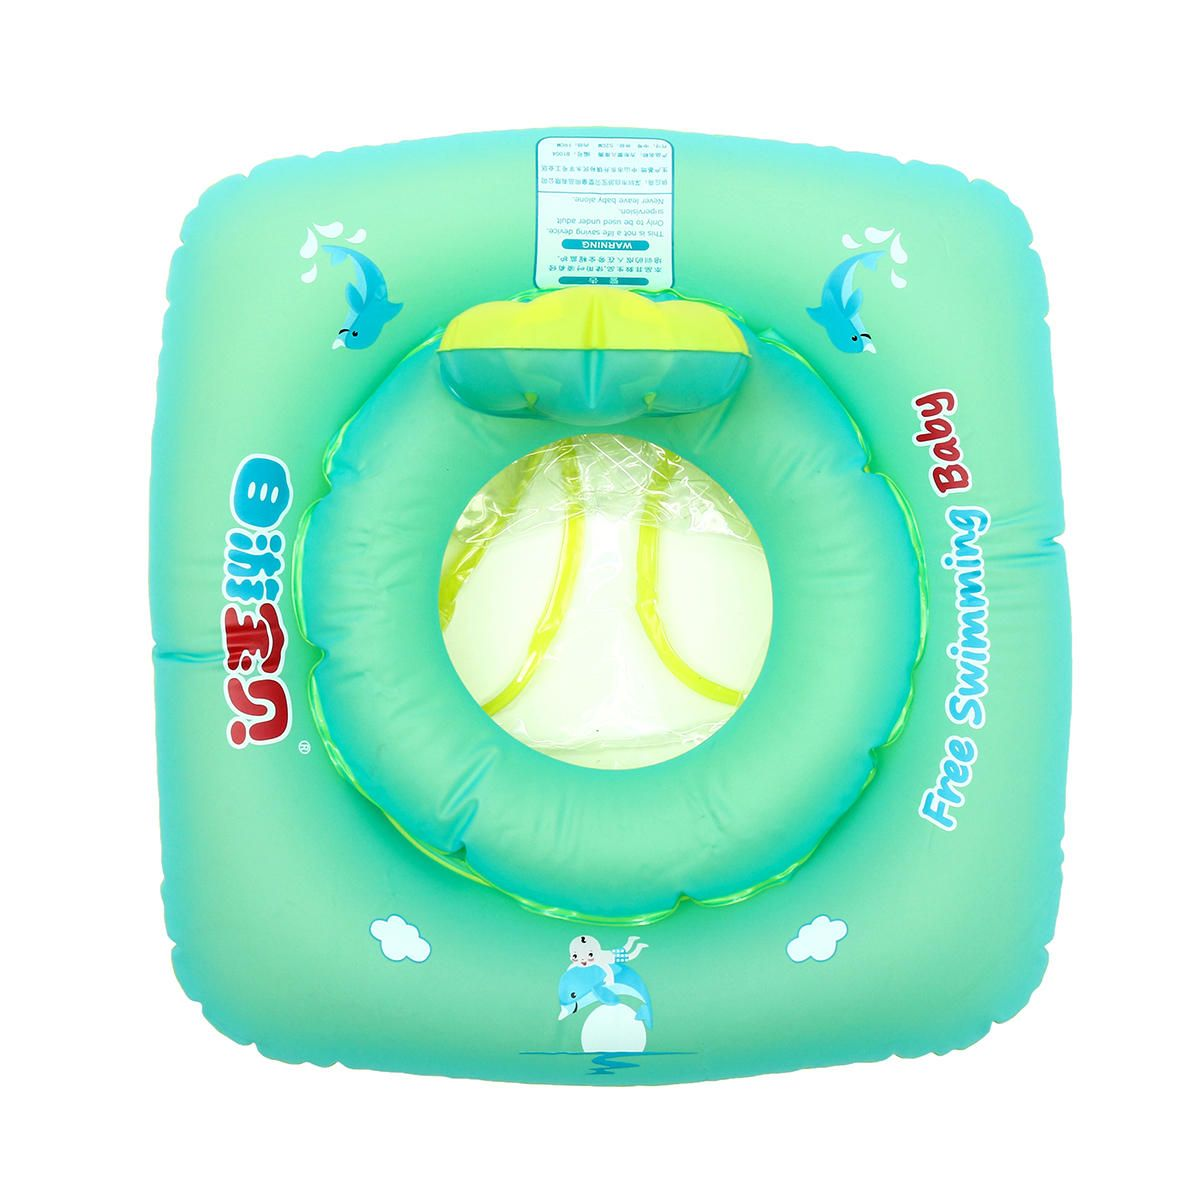 FMC US$28.99 Baby Inflatable Swimming Pool Floats Swim Ride Rings Safety Chair Raft Beach Toy